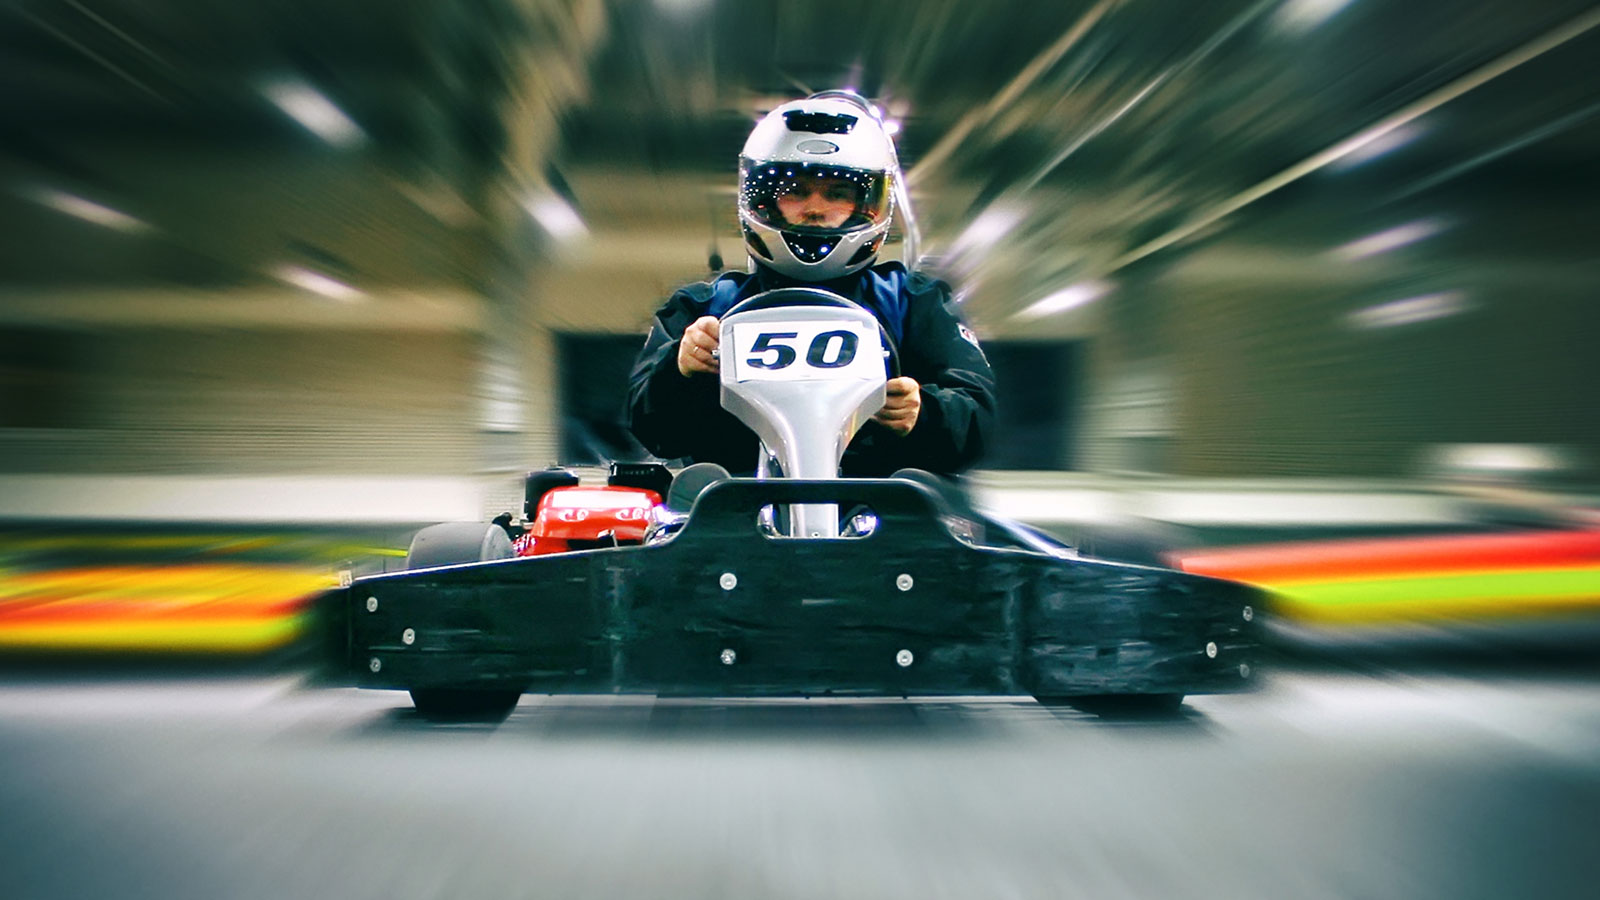 Pick Up Speed at Our Indoor Go-Karting Facility